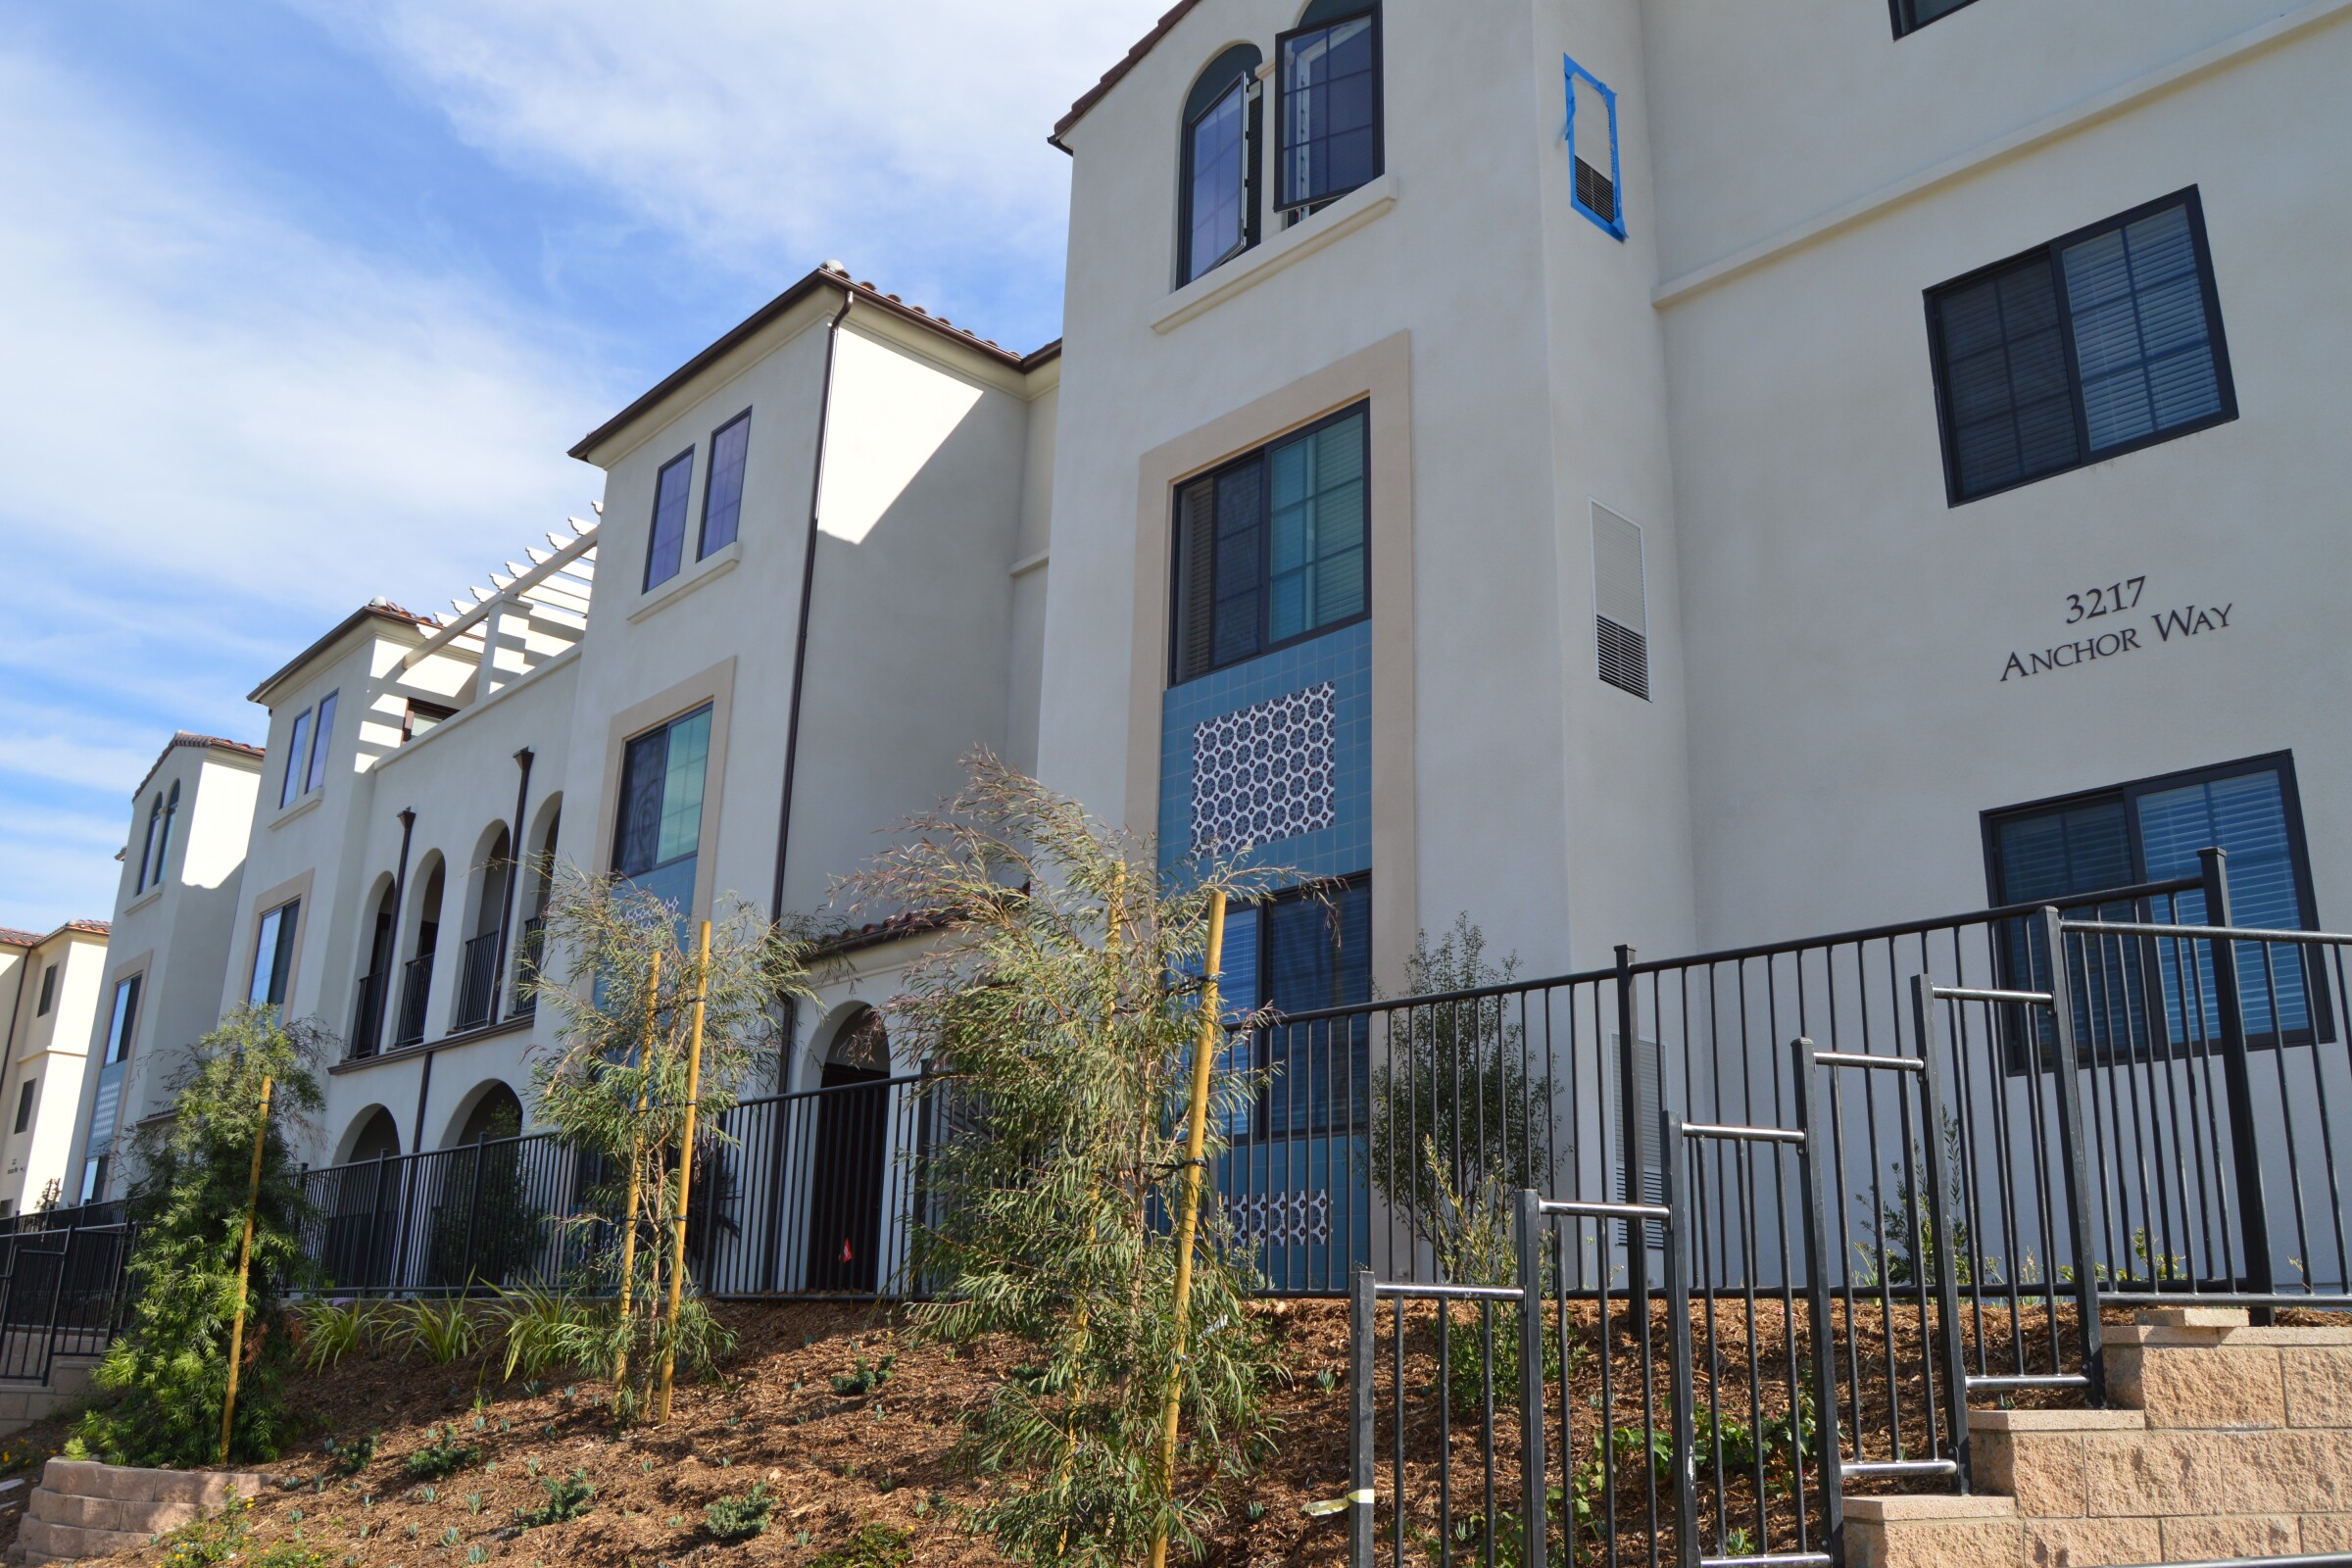 Mission Cove in Oceanside won the Ruby Award for new housing project of the year.